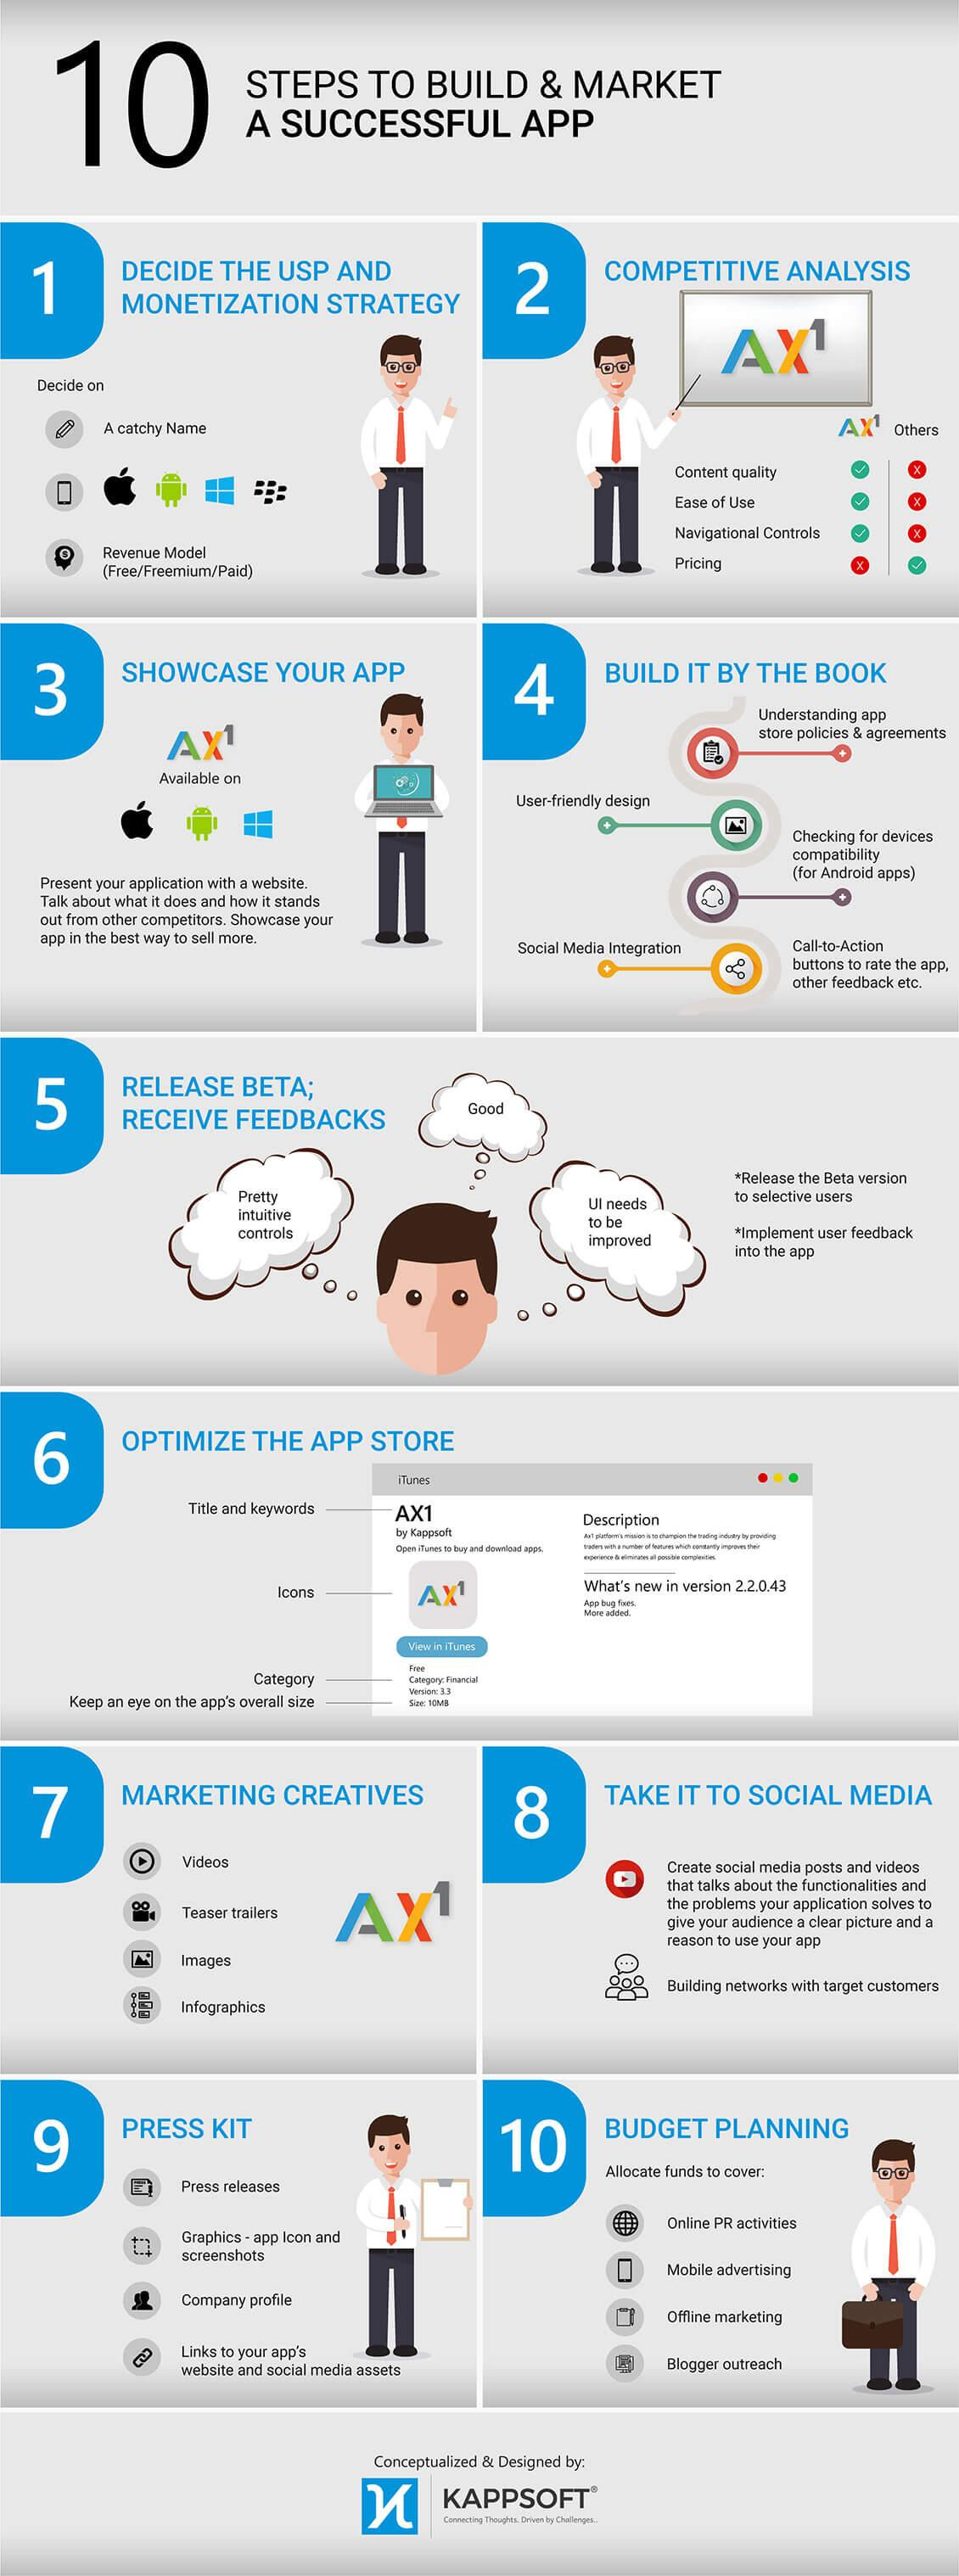 How to make a successful mobile application?